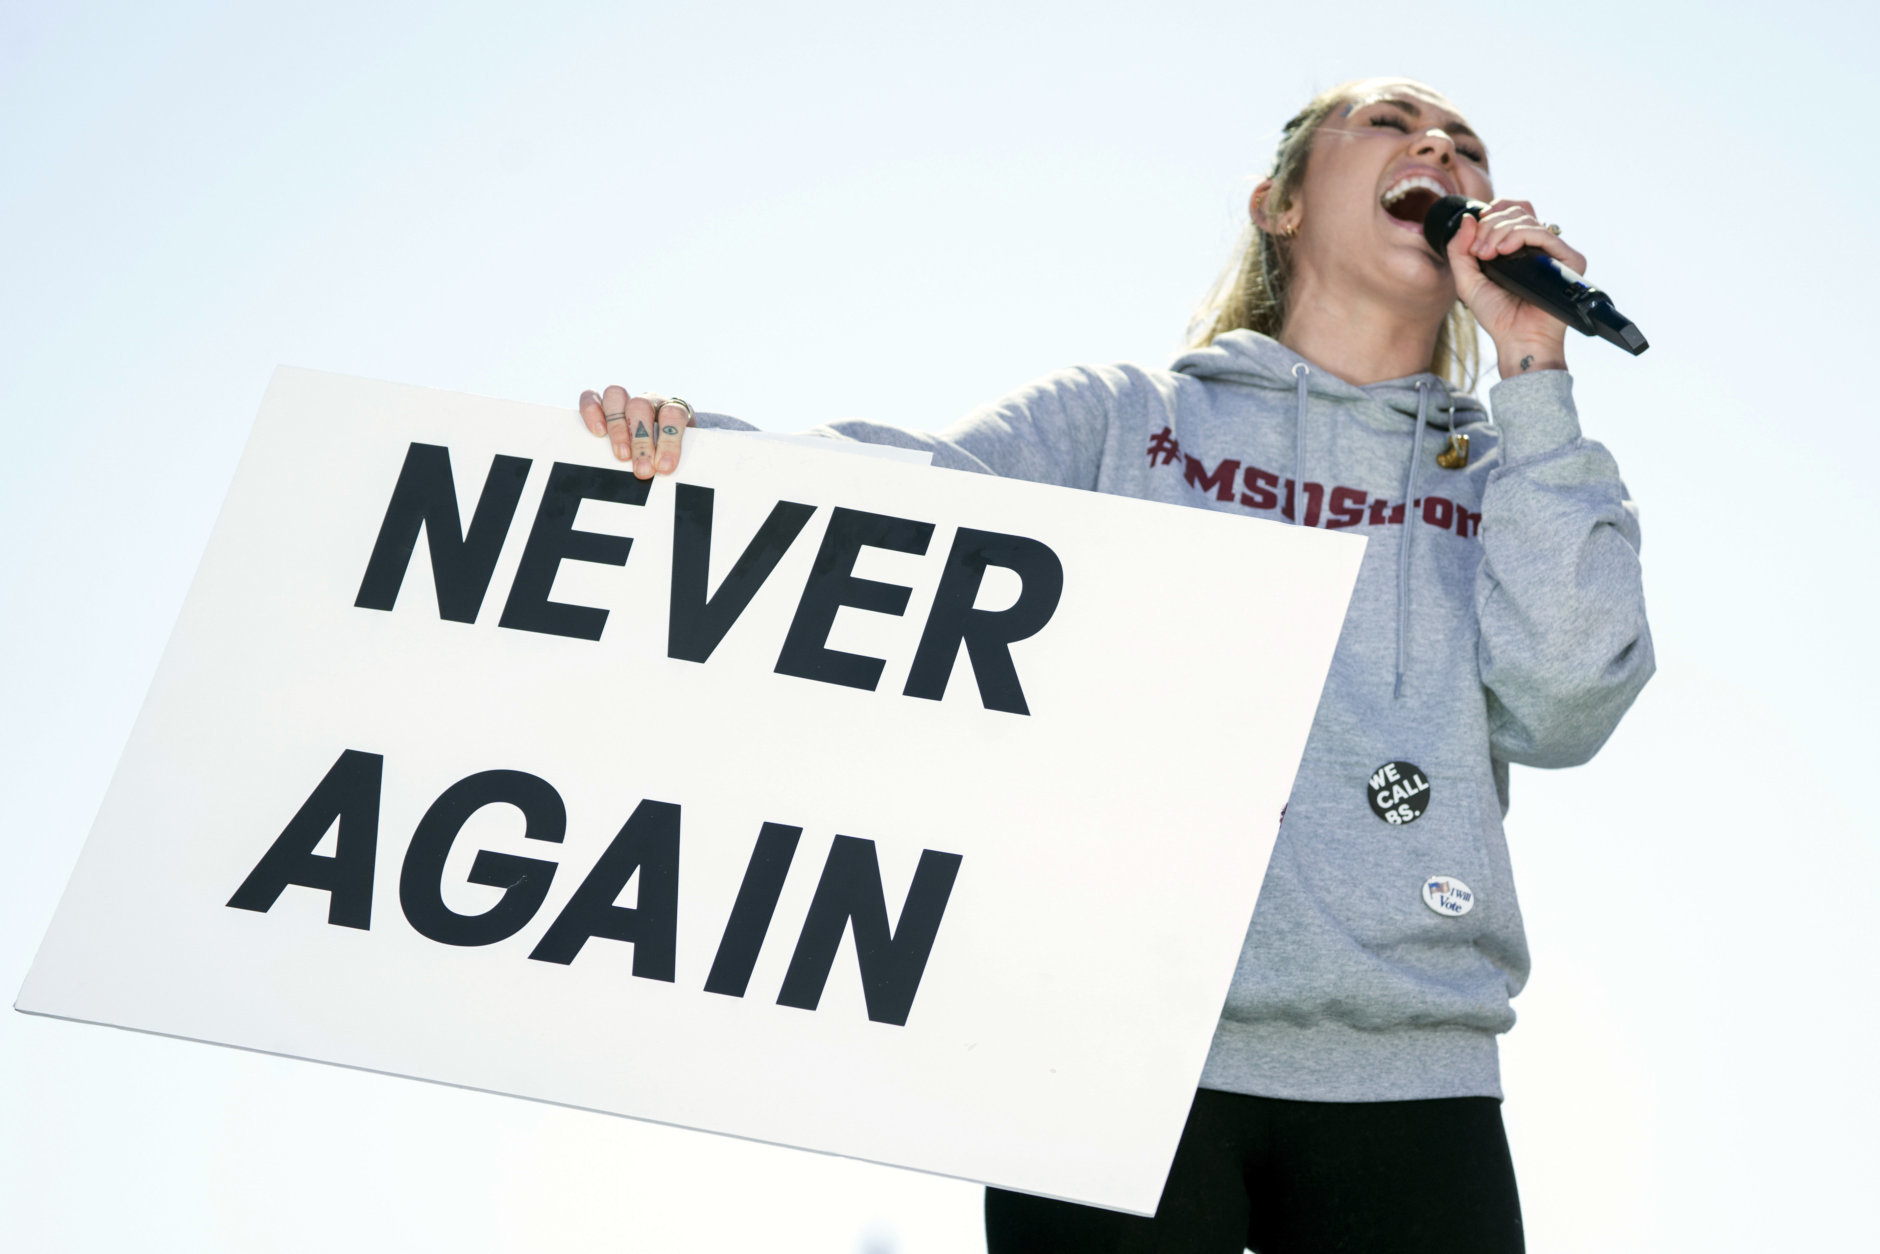 """Miley Cyrus performs """"The Climb"""" during the """"March for Our Lives"""" rally in support of gun control in Washington, Saturday, March 24, 2018. (AP Photo/Andrew Harnik)"""